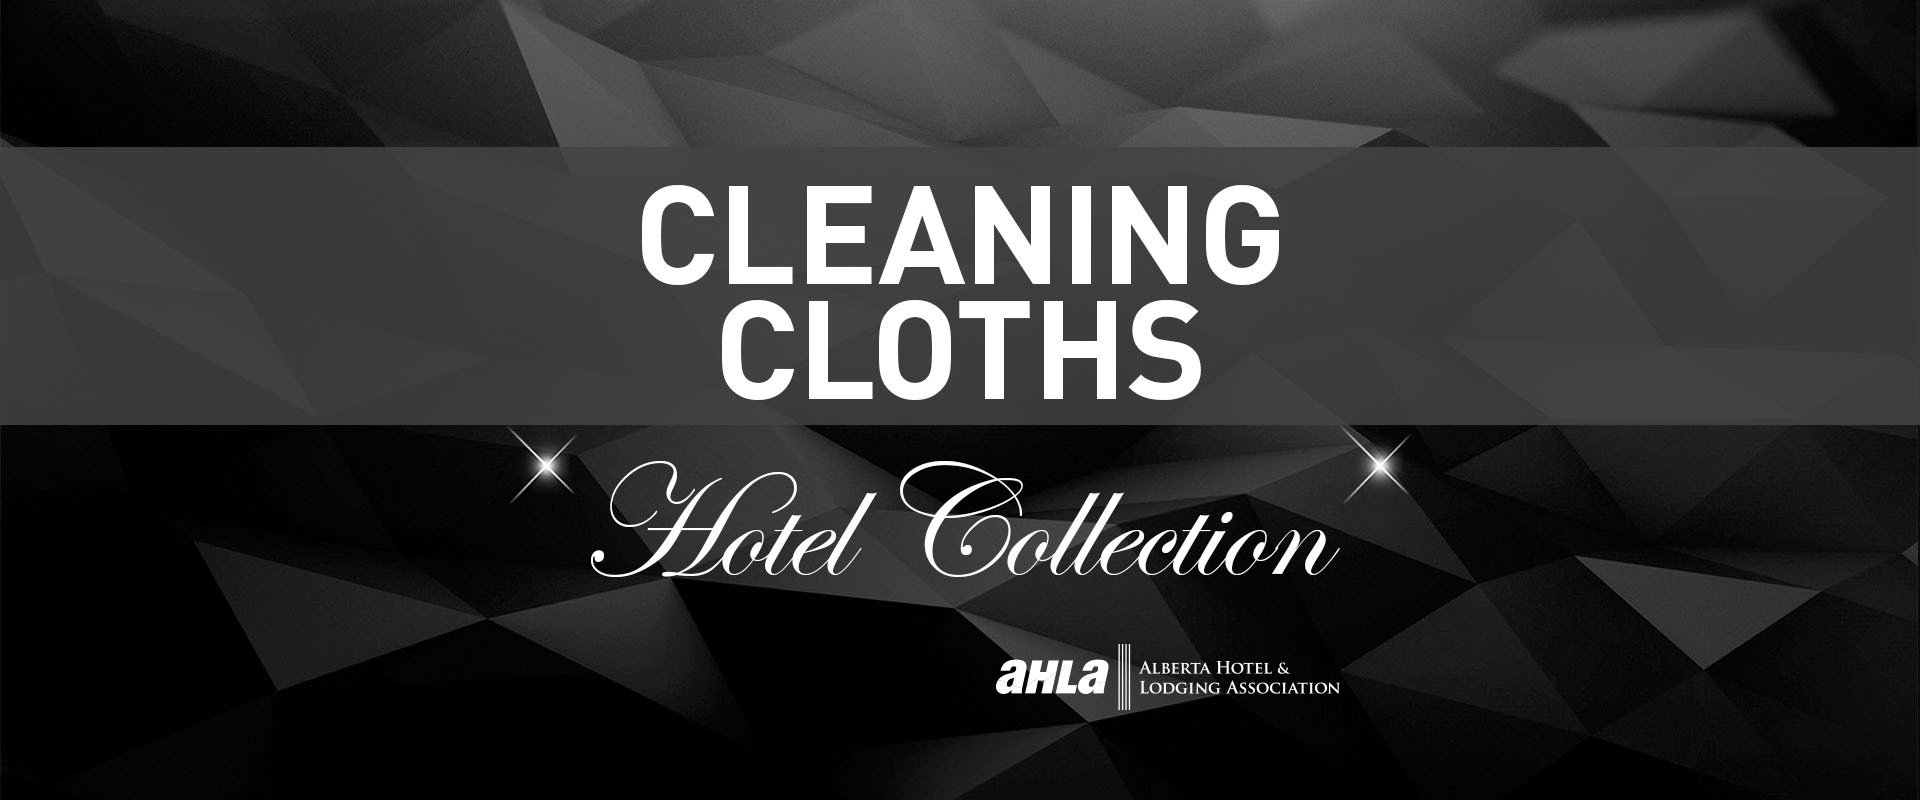 Goodwill Cleaning Cloths: Hotel Collection